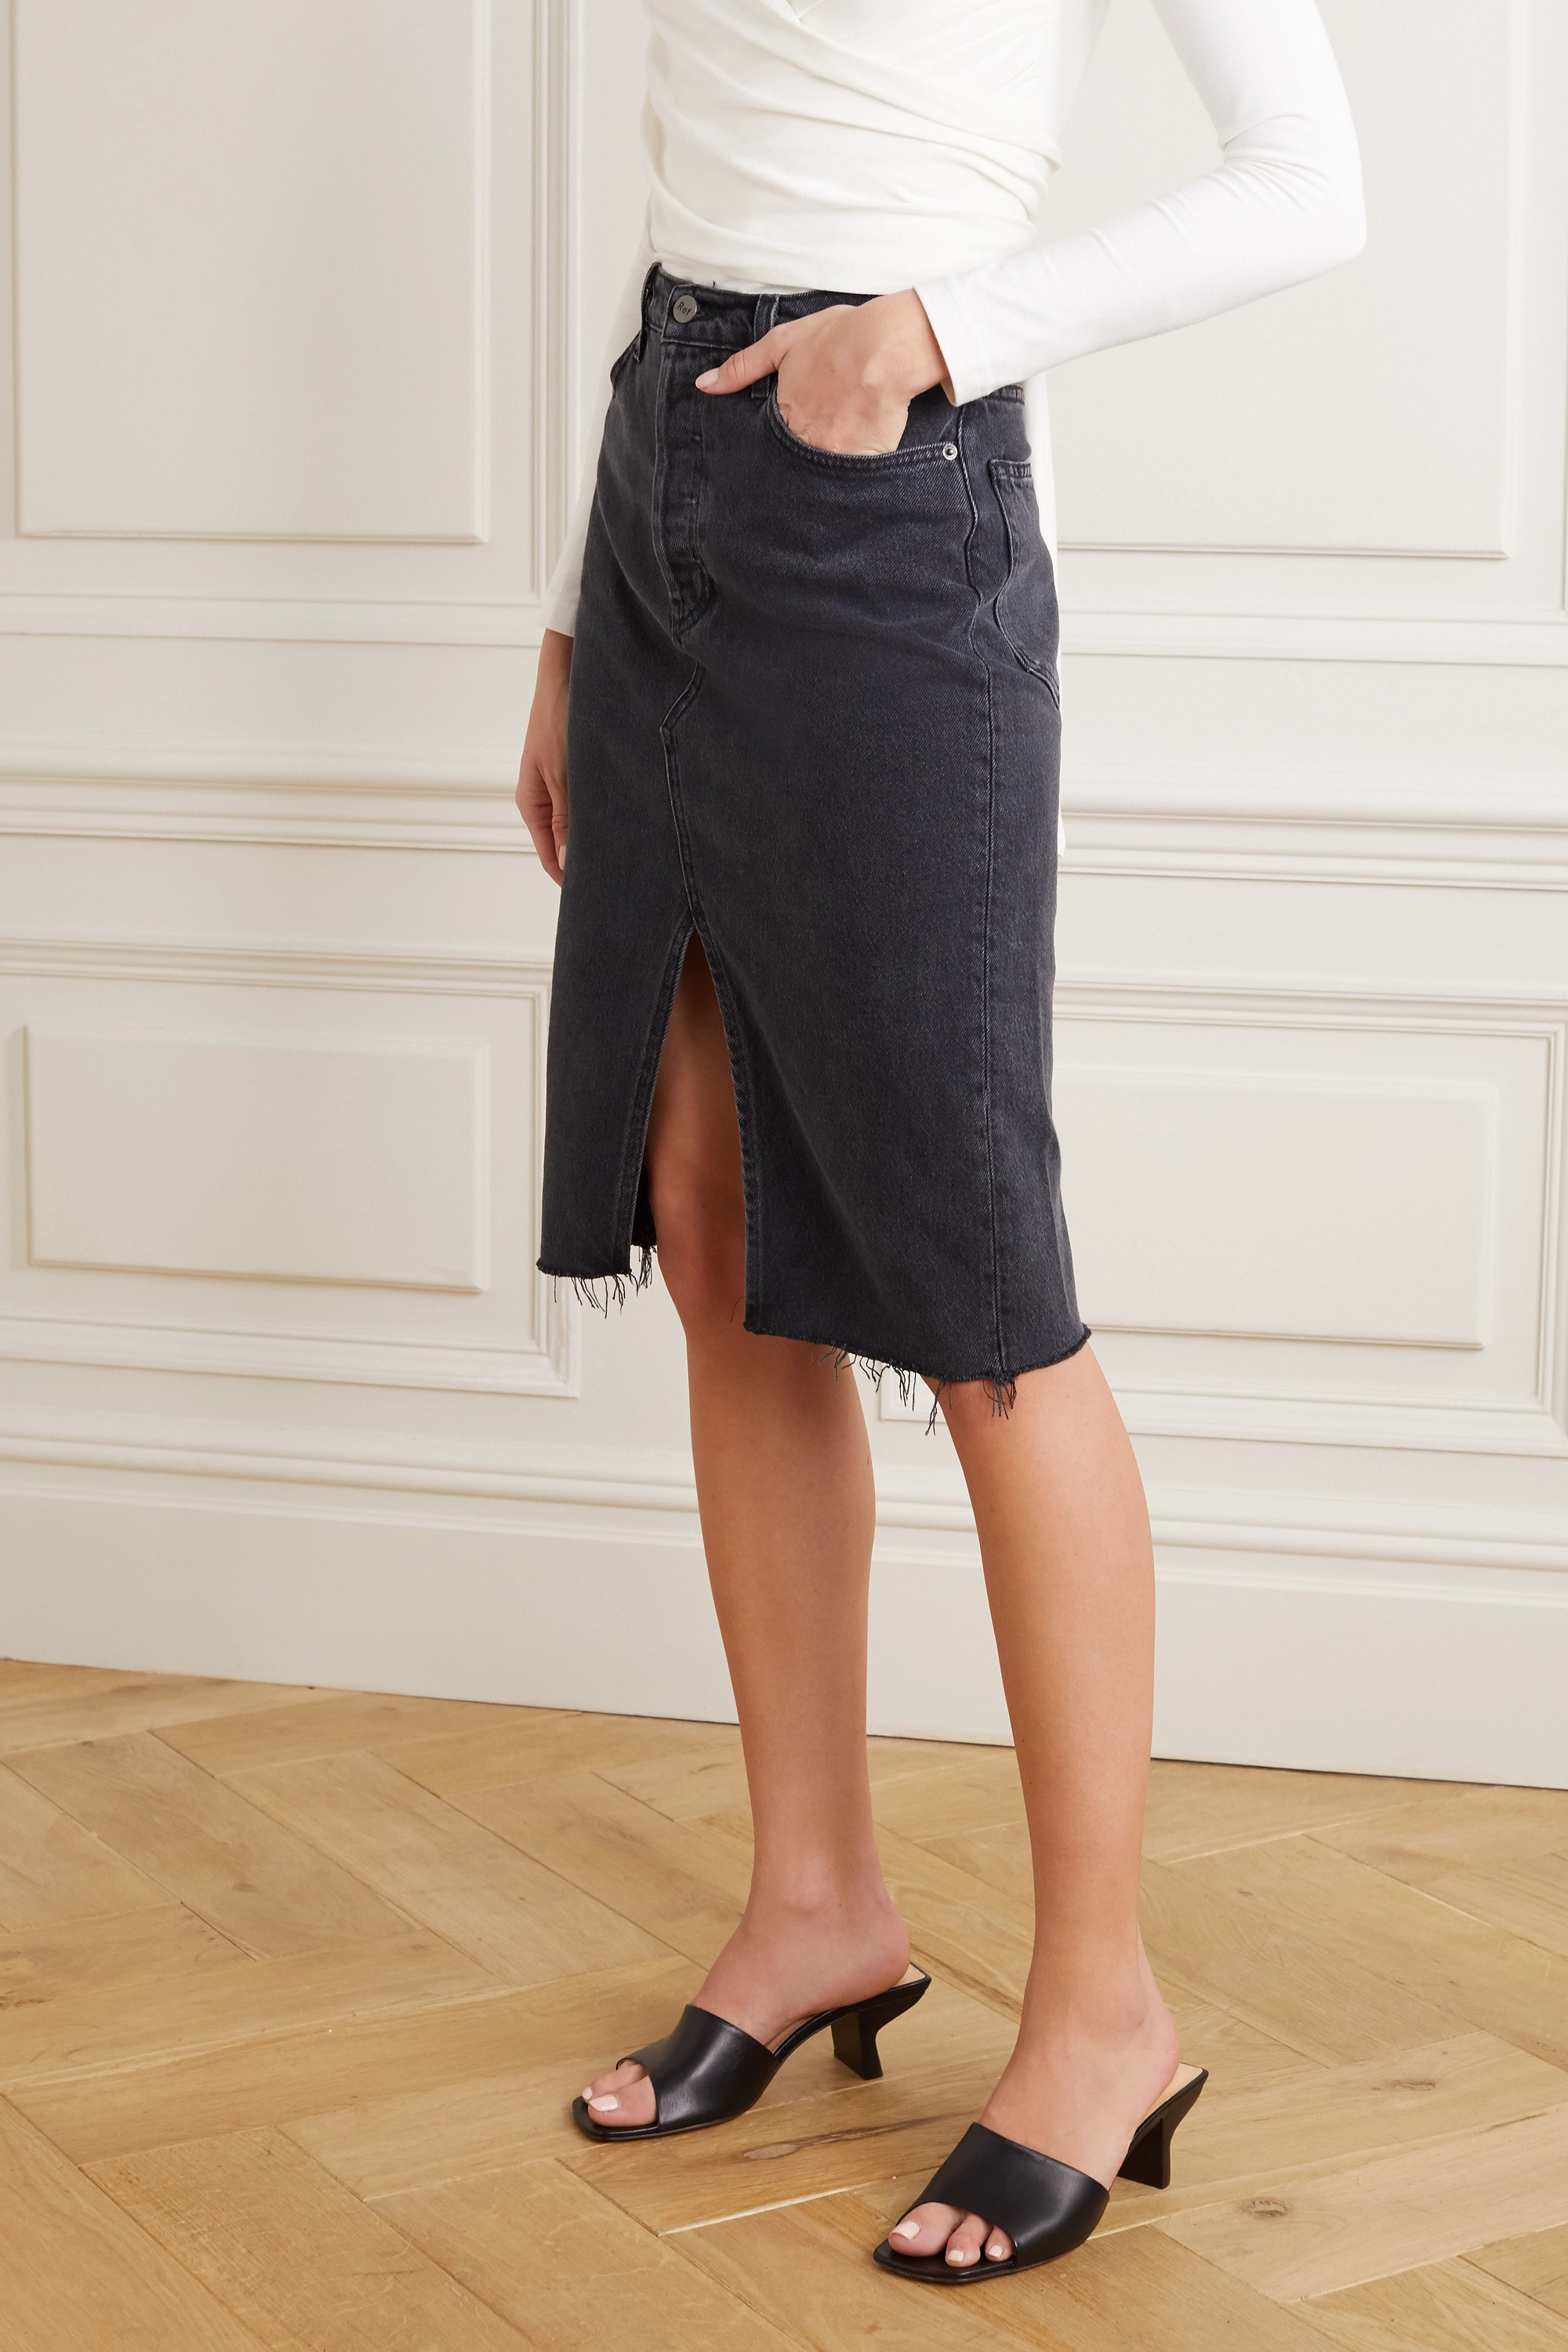 Reformation + NET SUSTAIN distressed denim skirt